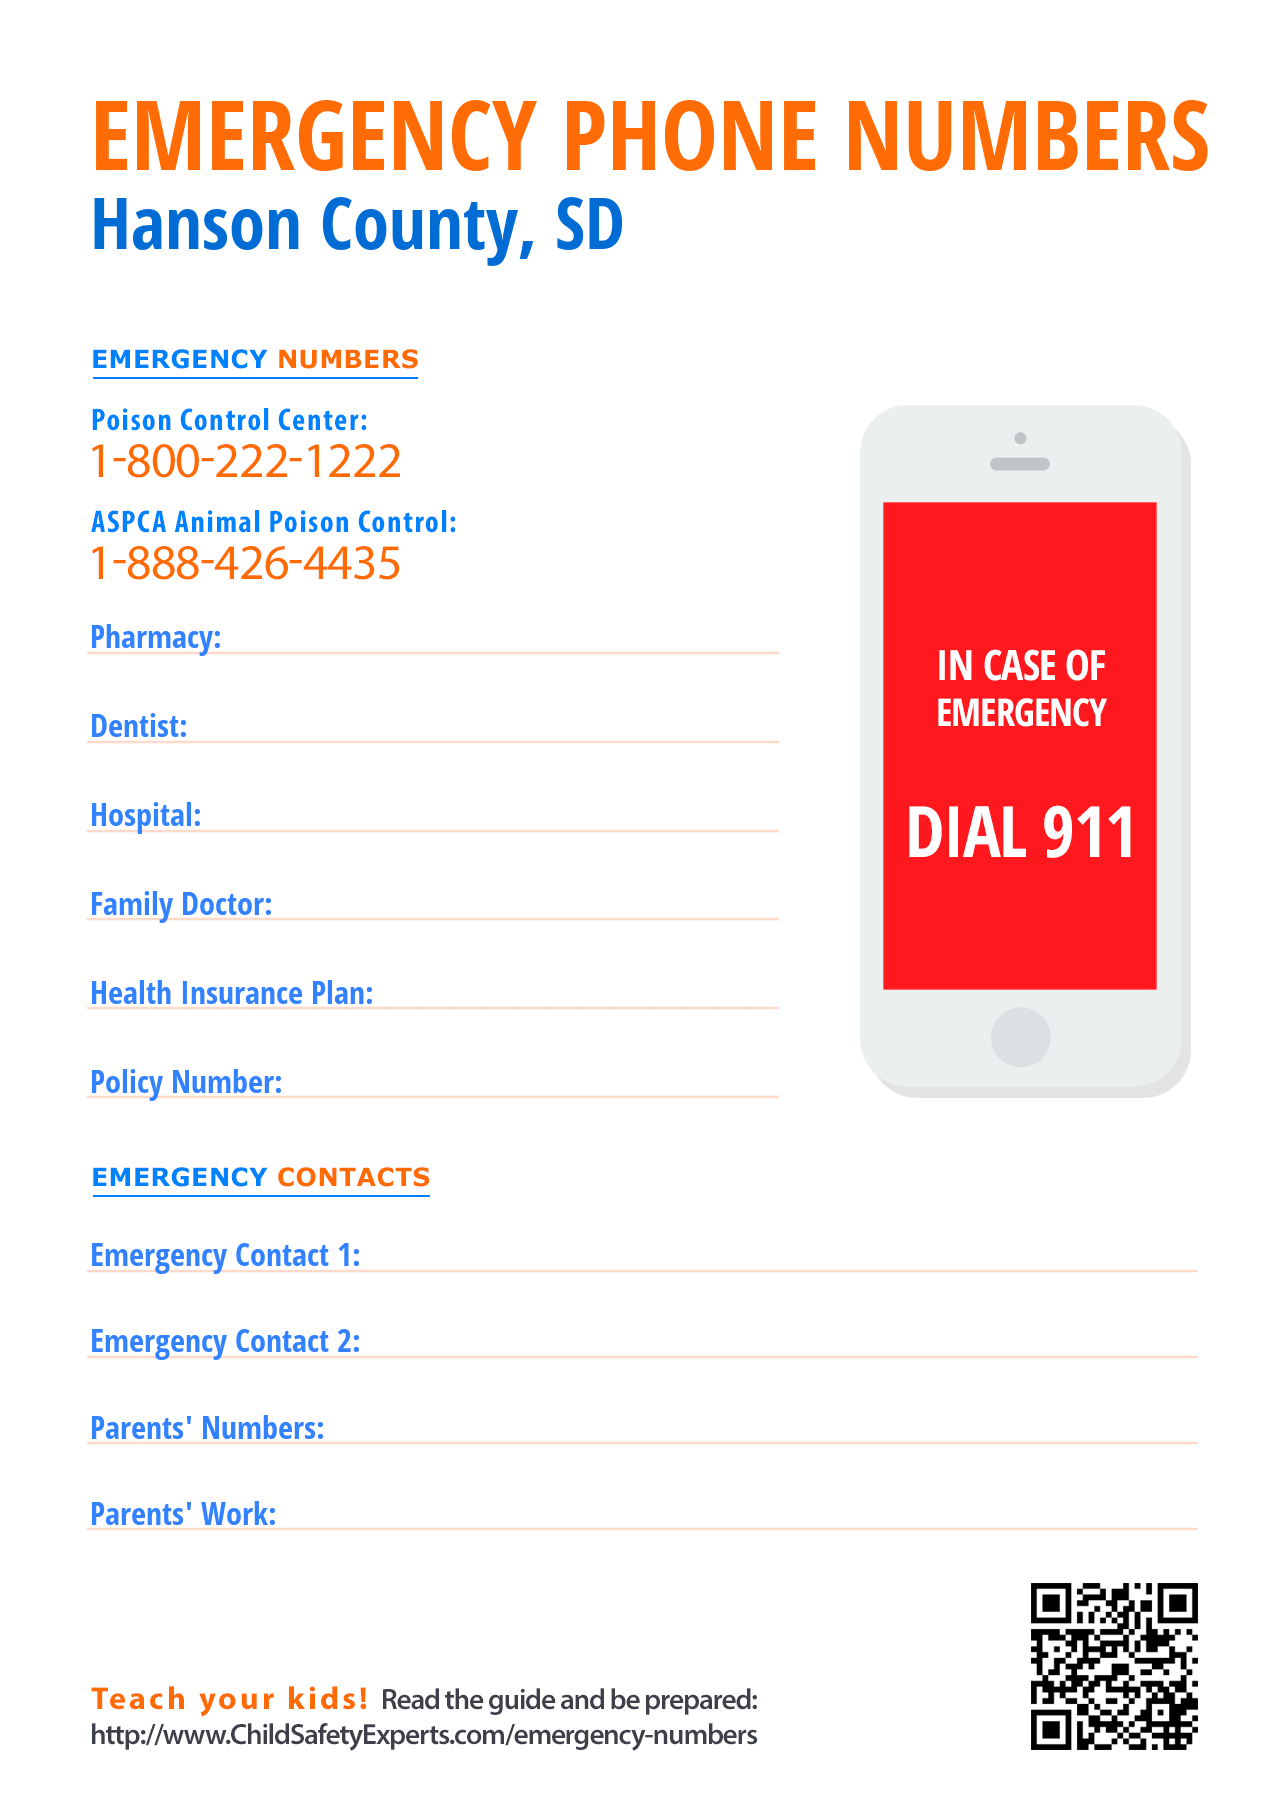 Important emergency phone numbers in Hanson County, South Dakota